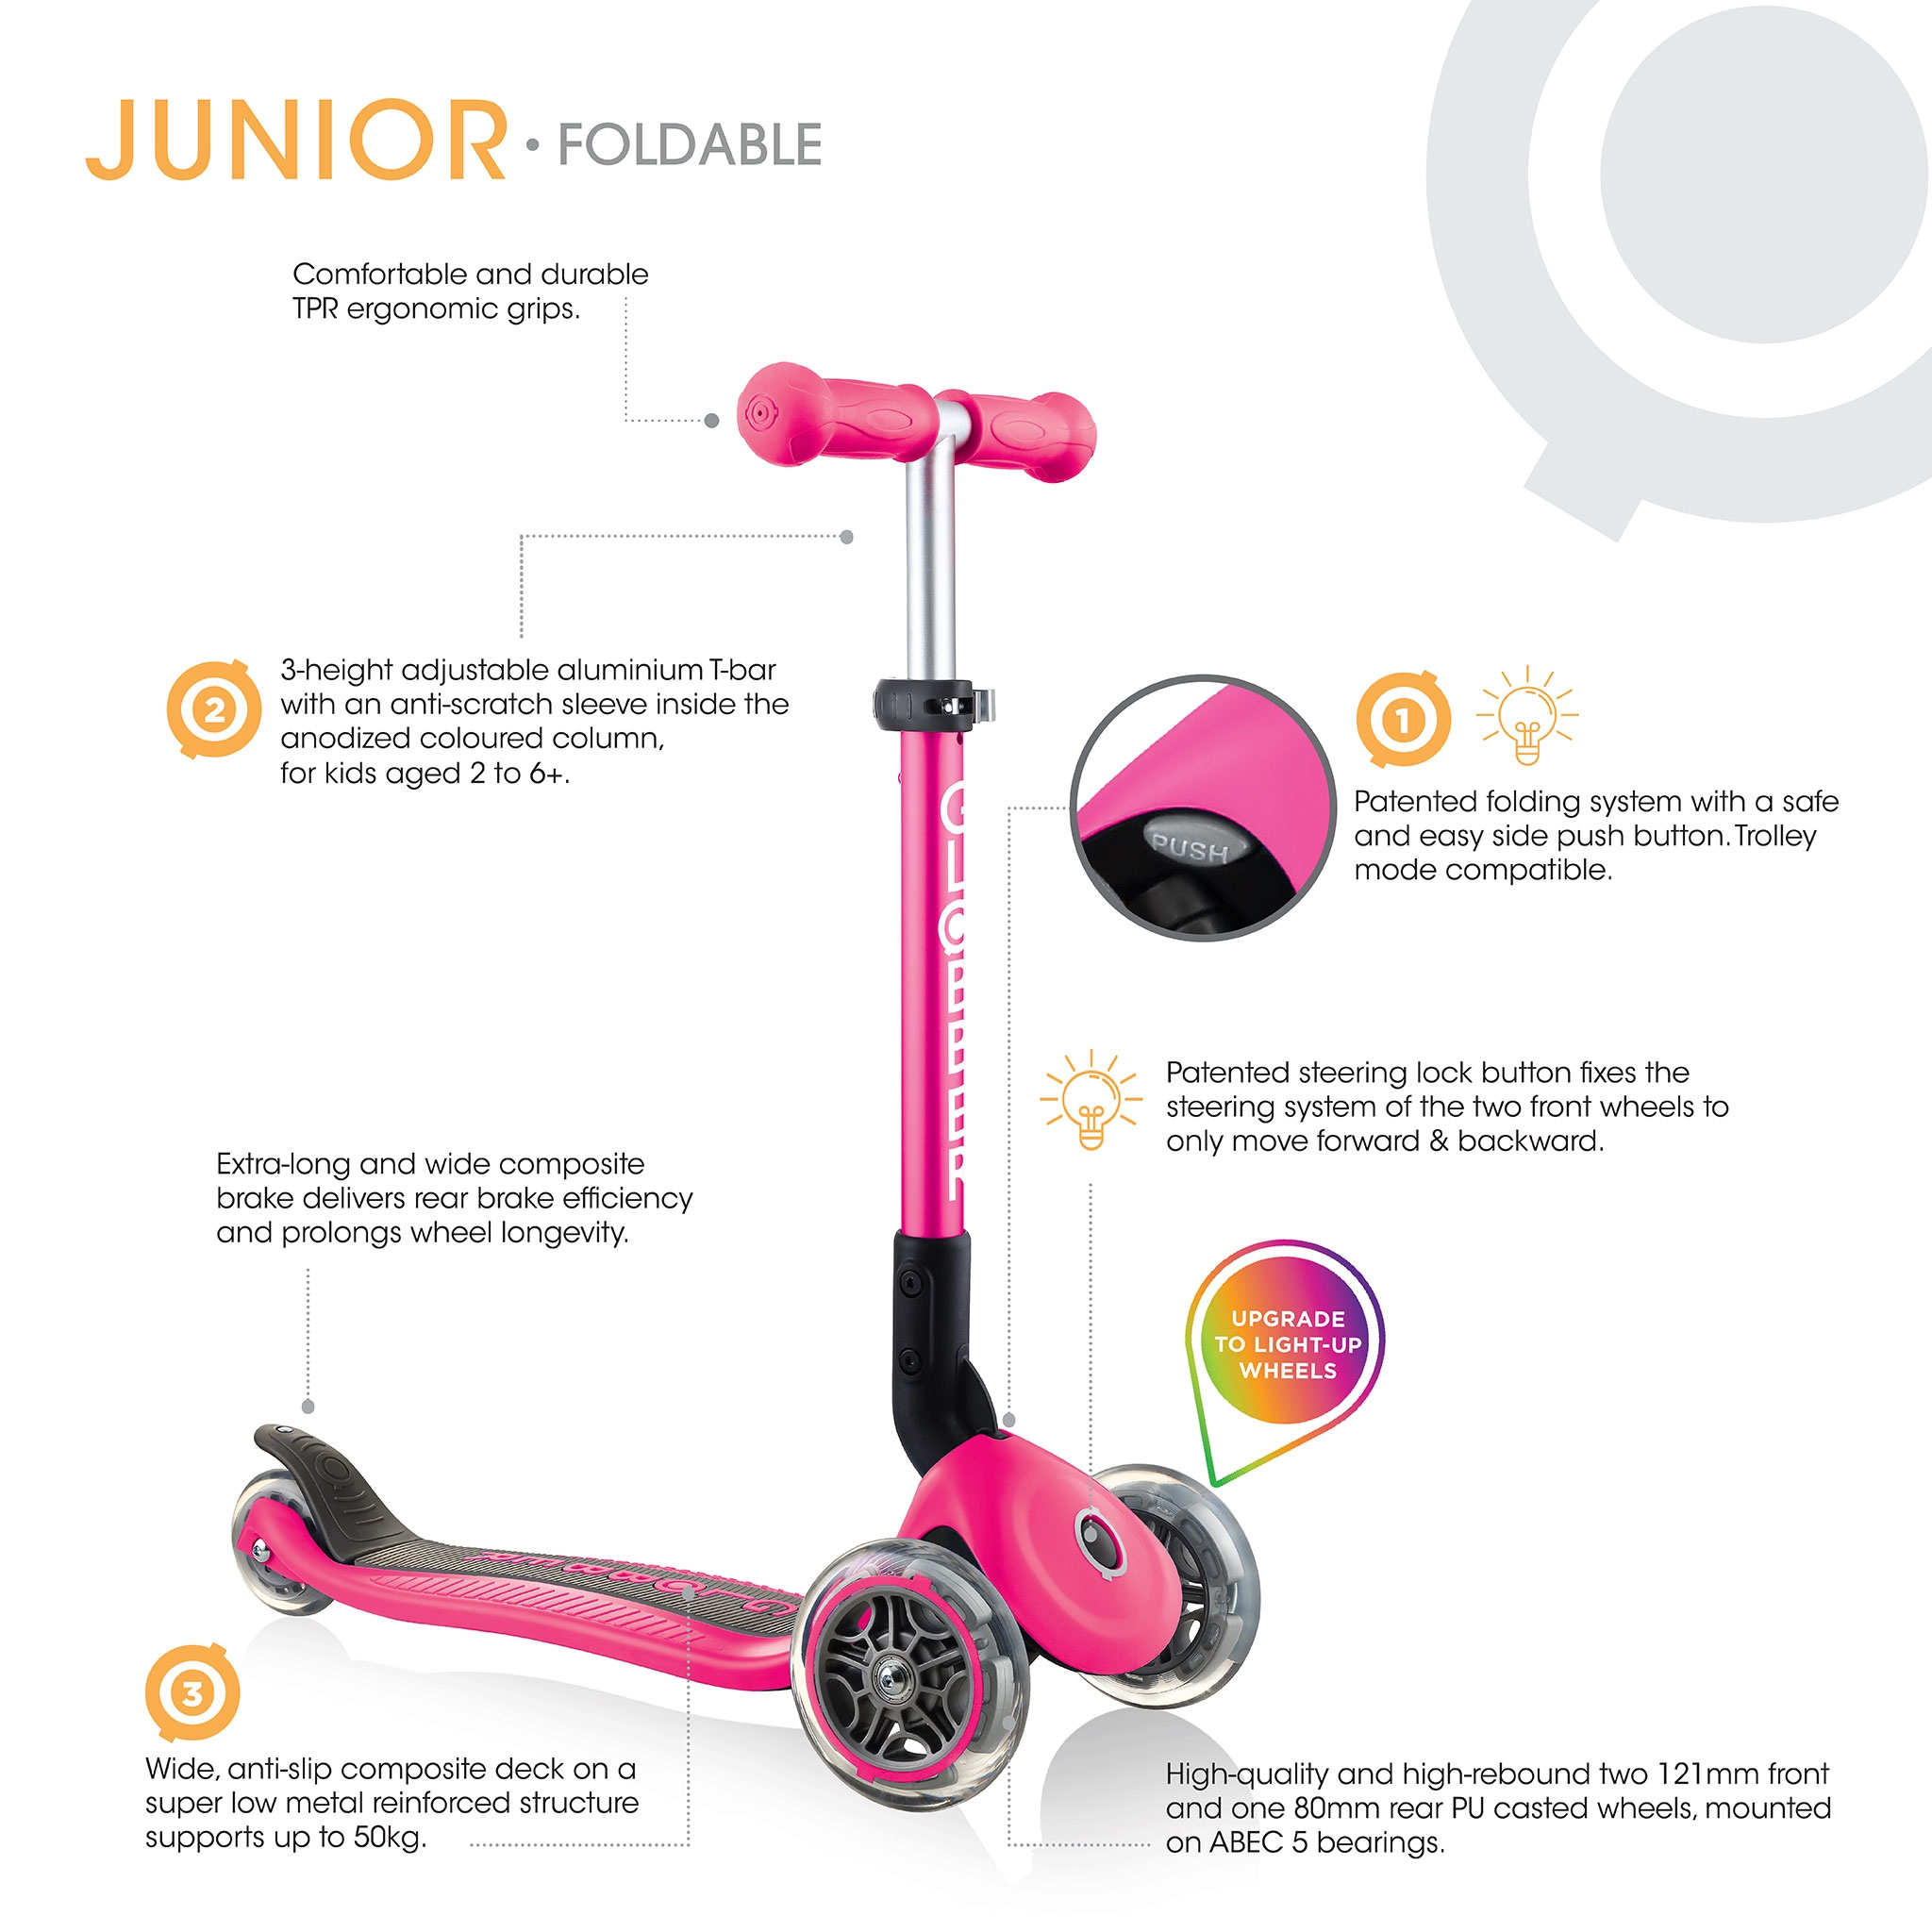 3-wheel-foldable-scooter-for-toddlers-aged-2-and-above-Globber-JUNIOR-FOLDABLE 1